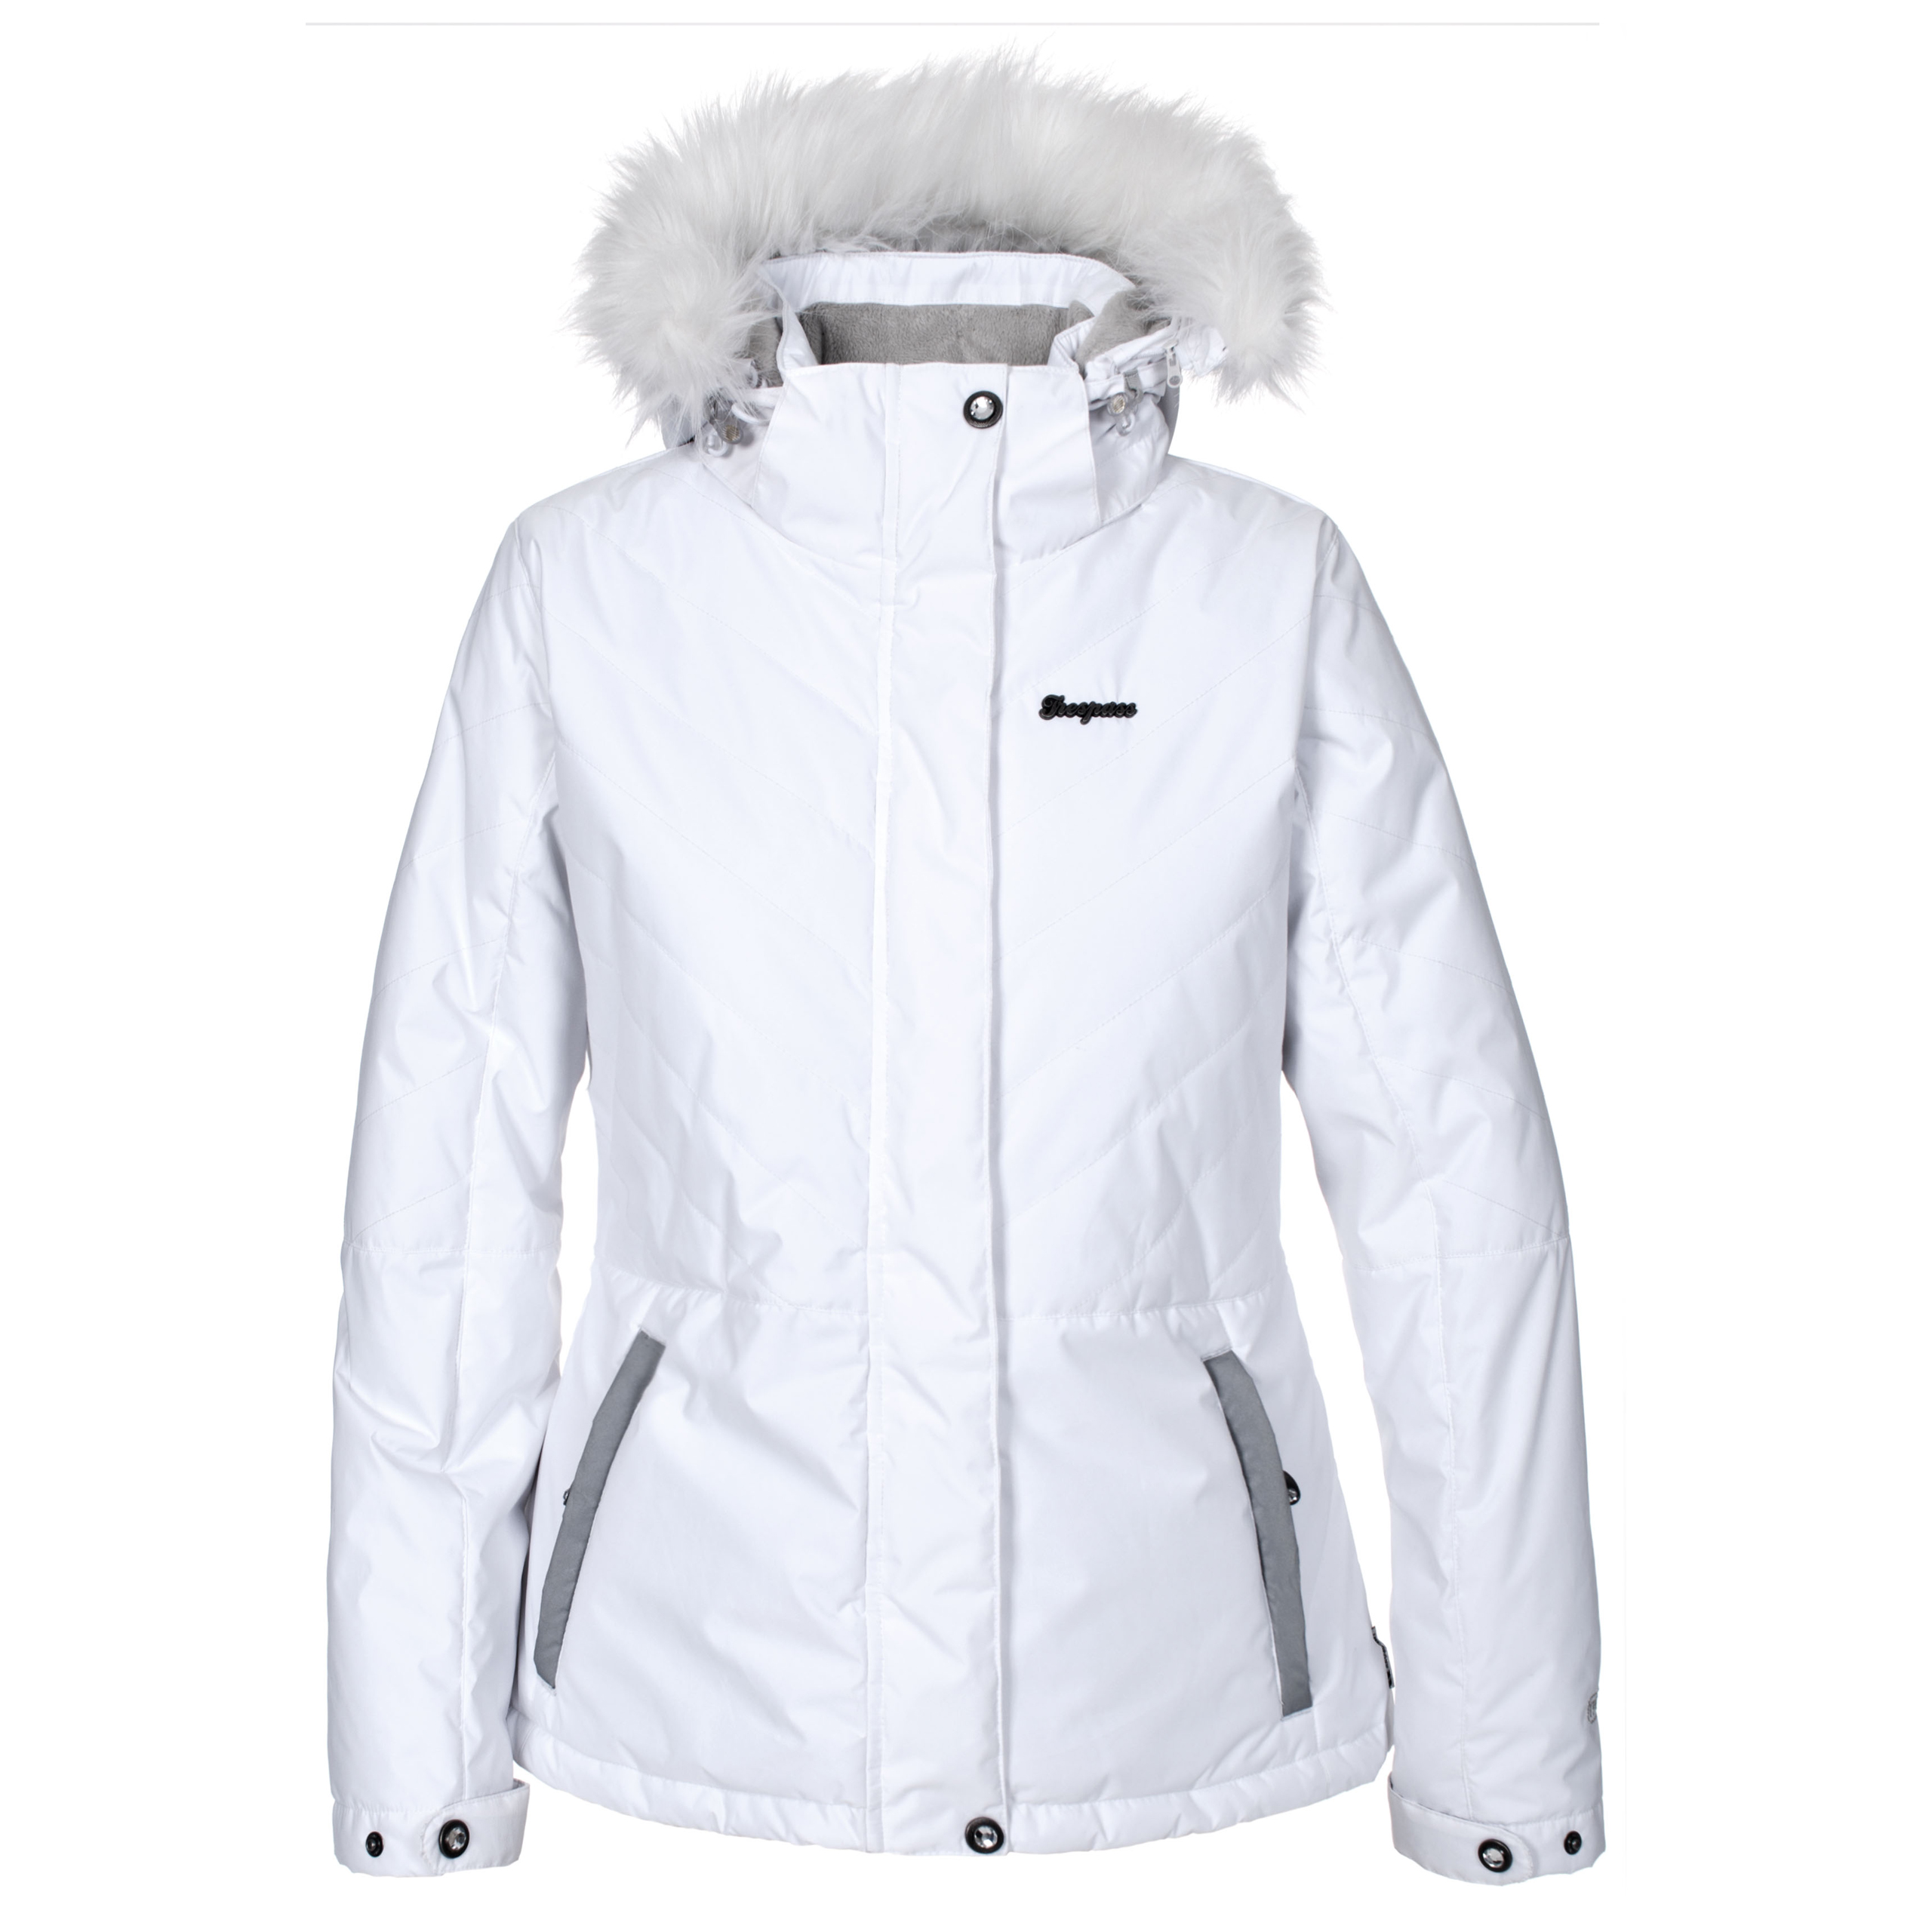 Womens Padded Jacket With Hood Clothing Stores